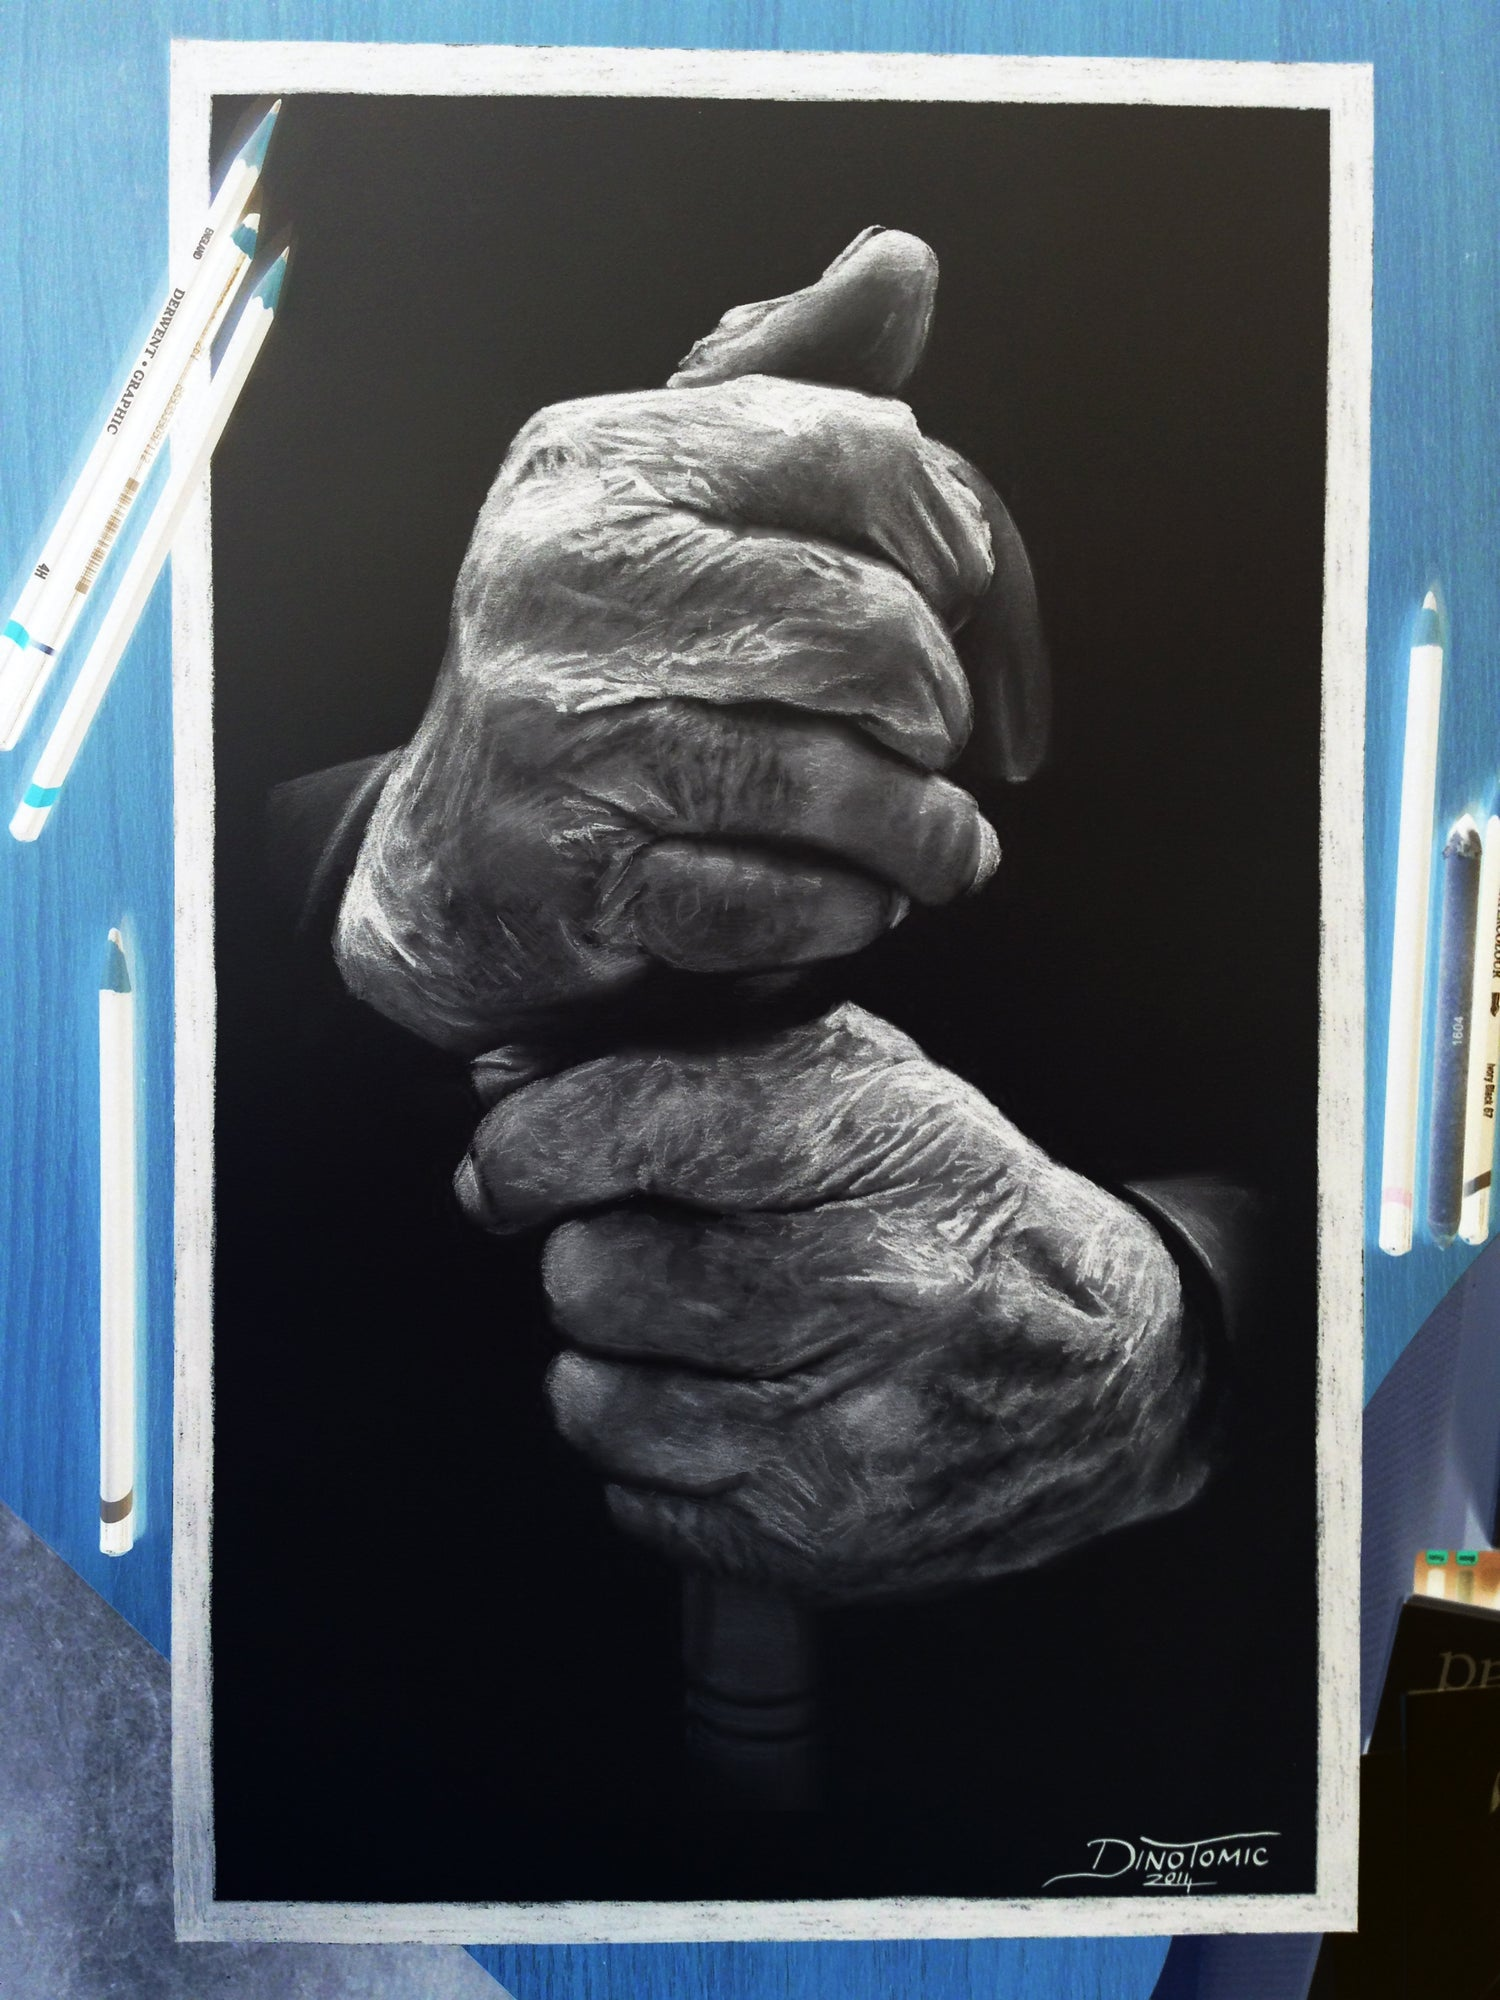 Image of #99 Inverted hands